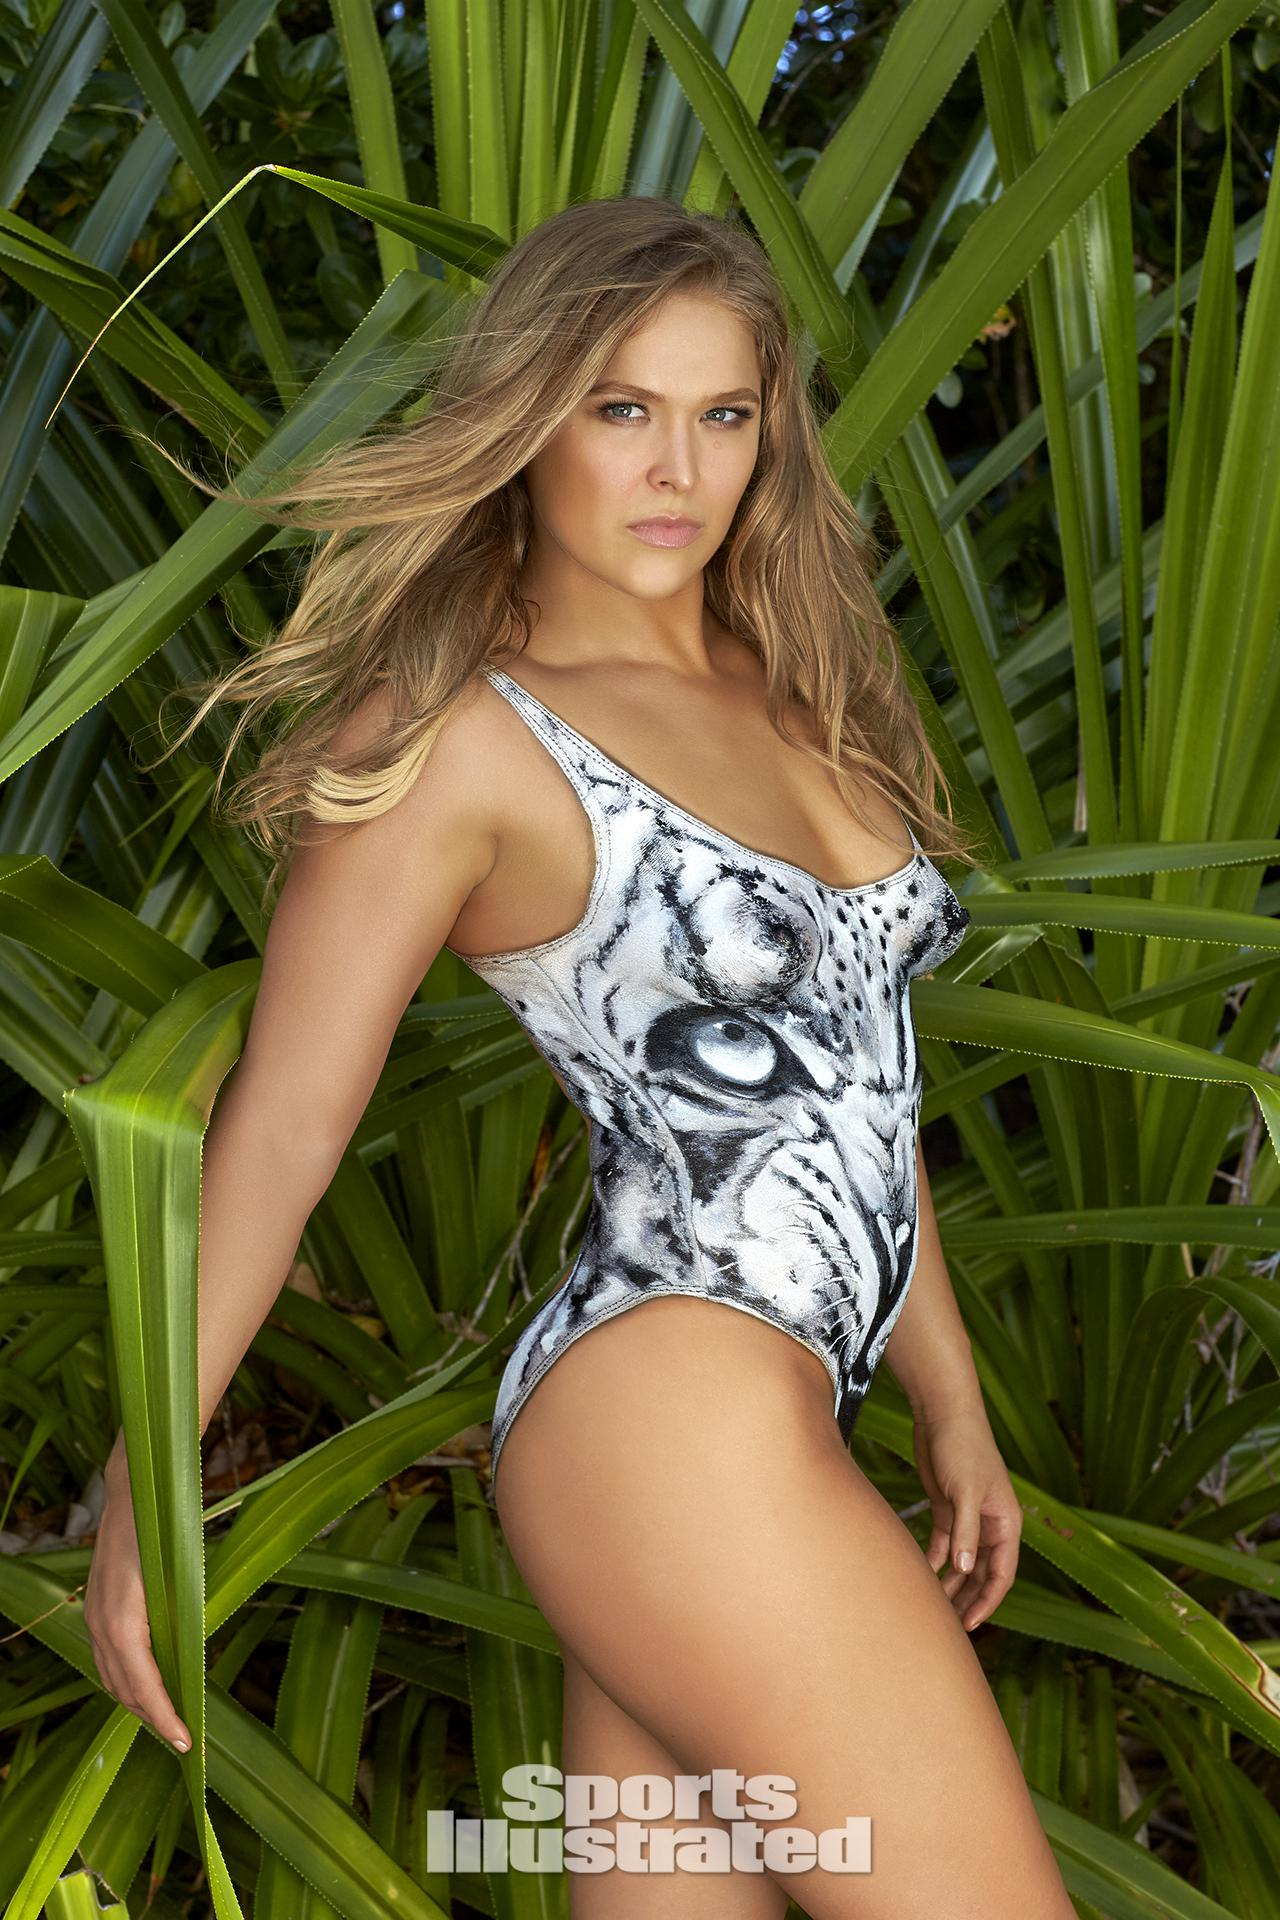 ... Rousey Swimsuit Body Paint Photos, Sports Illustrated Swimsuit 2016